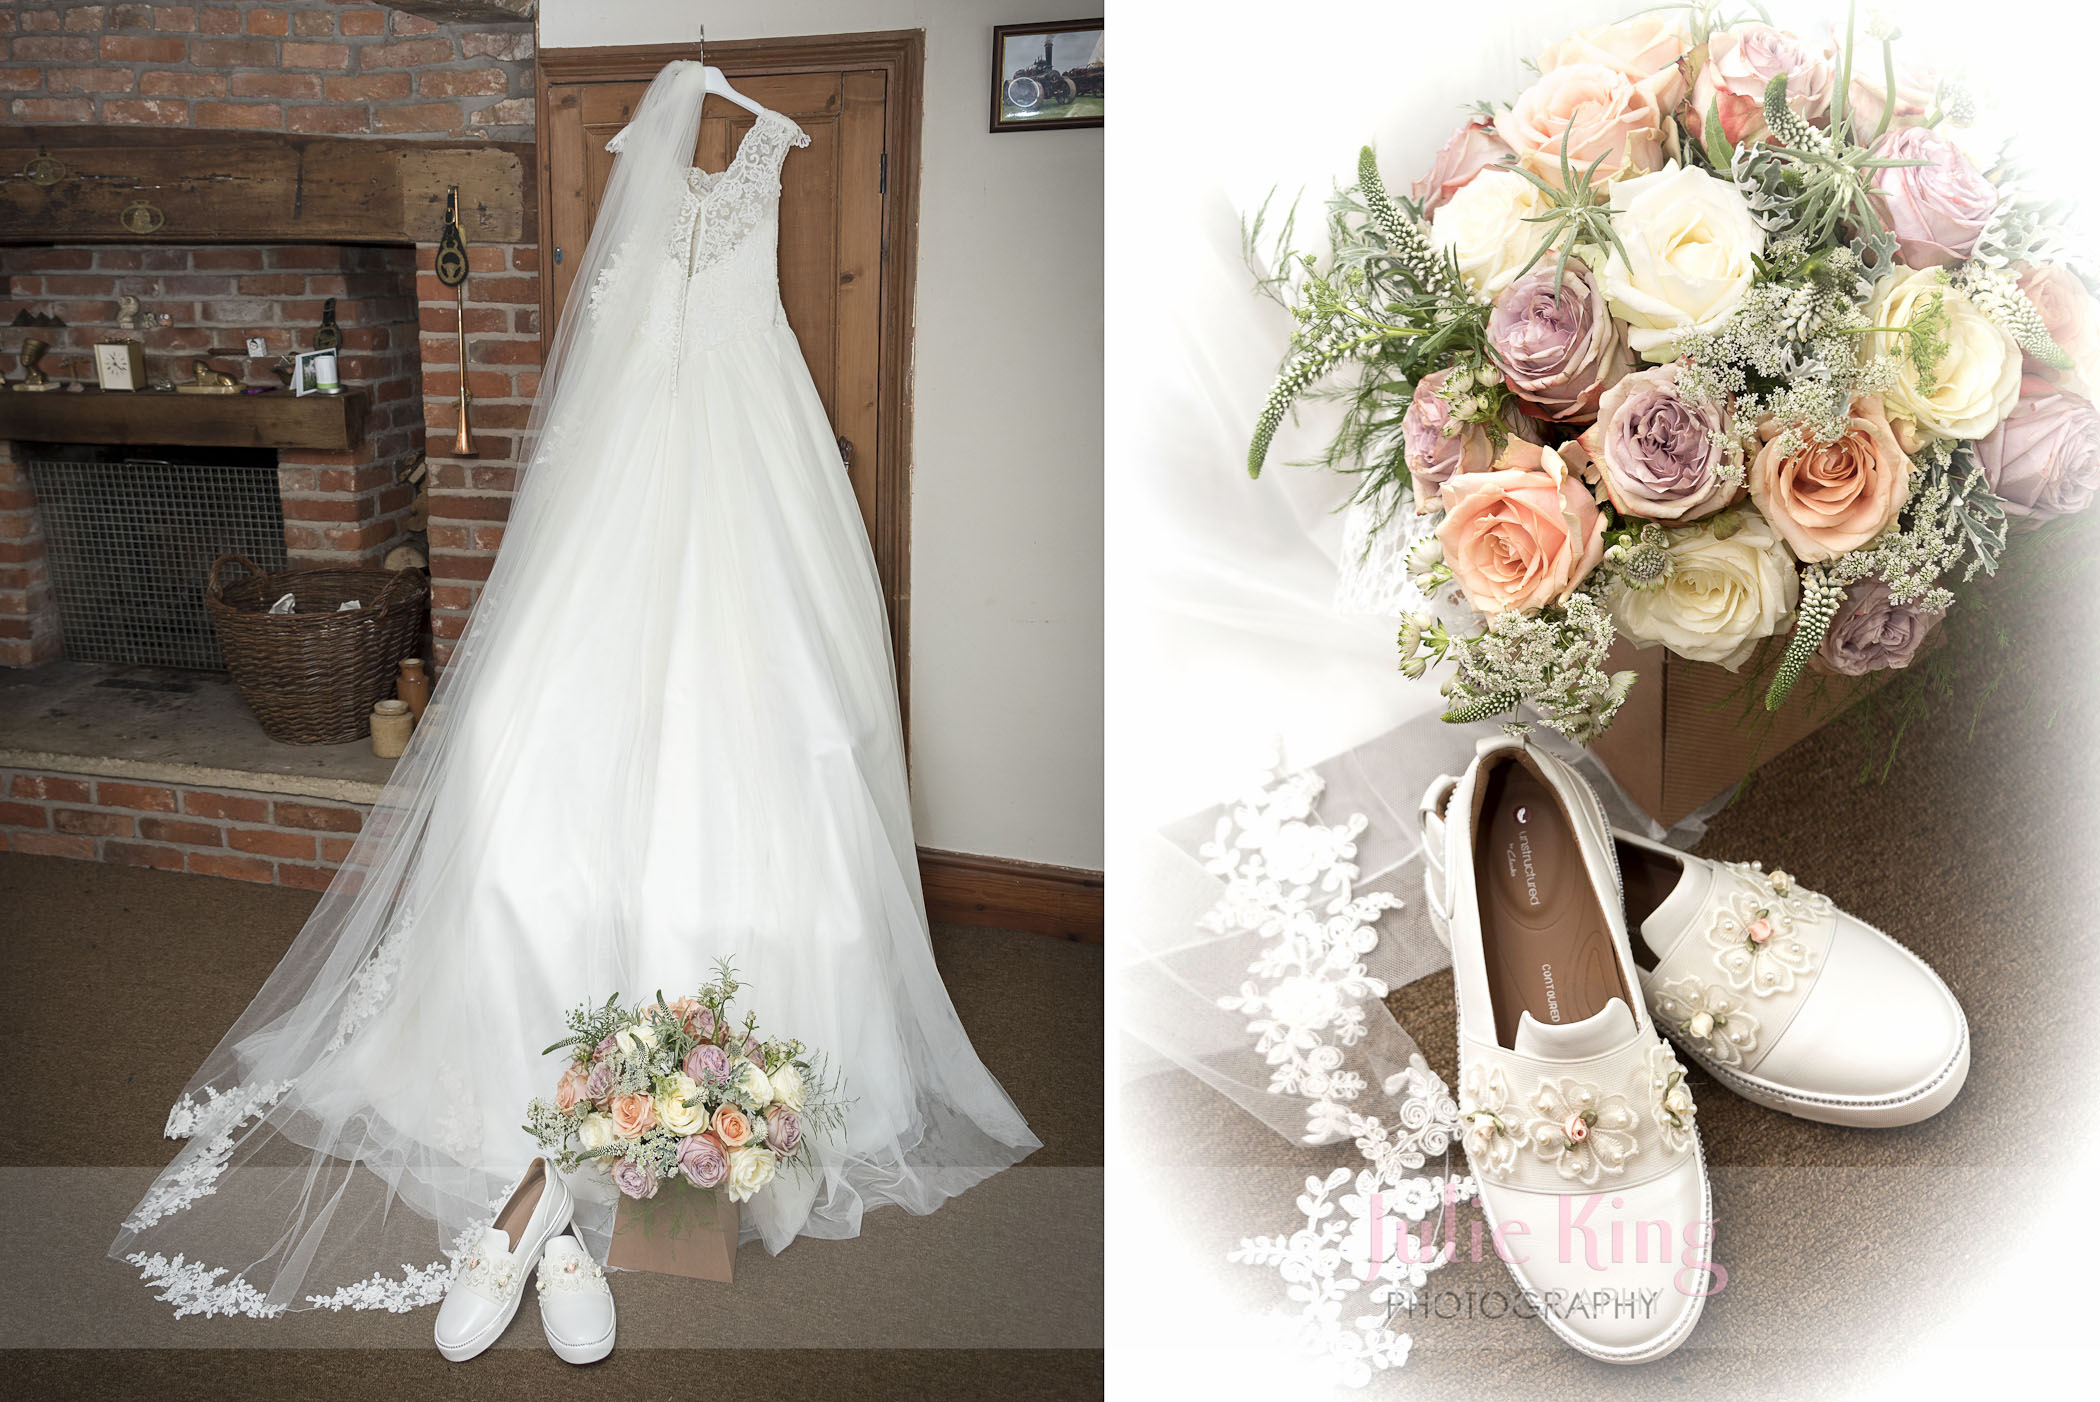 experienced wedding photographer Bromsgrove